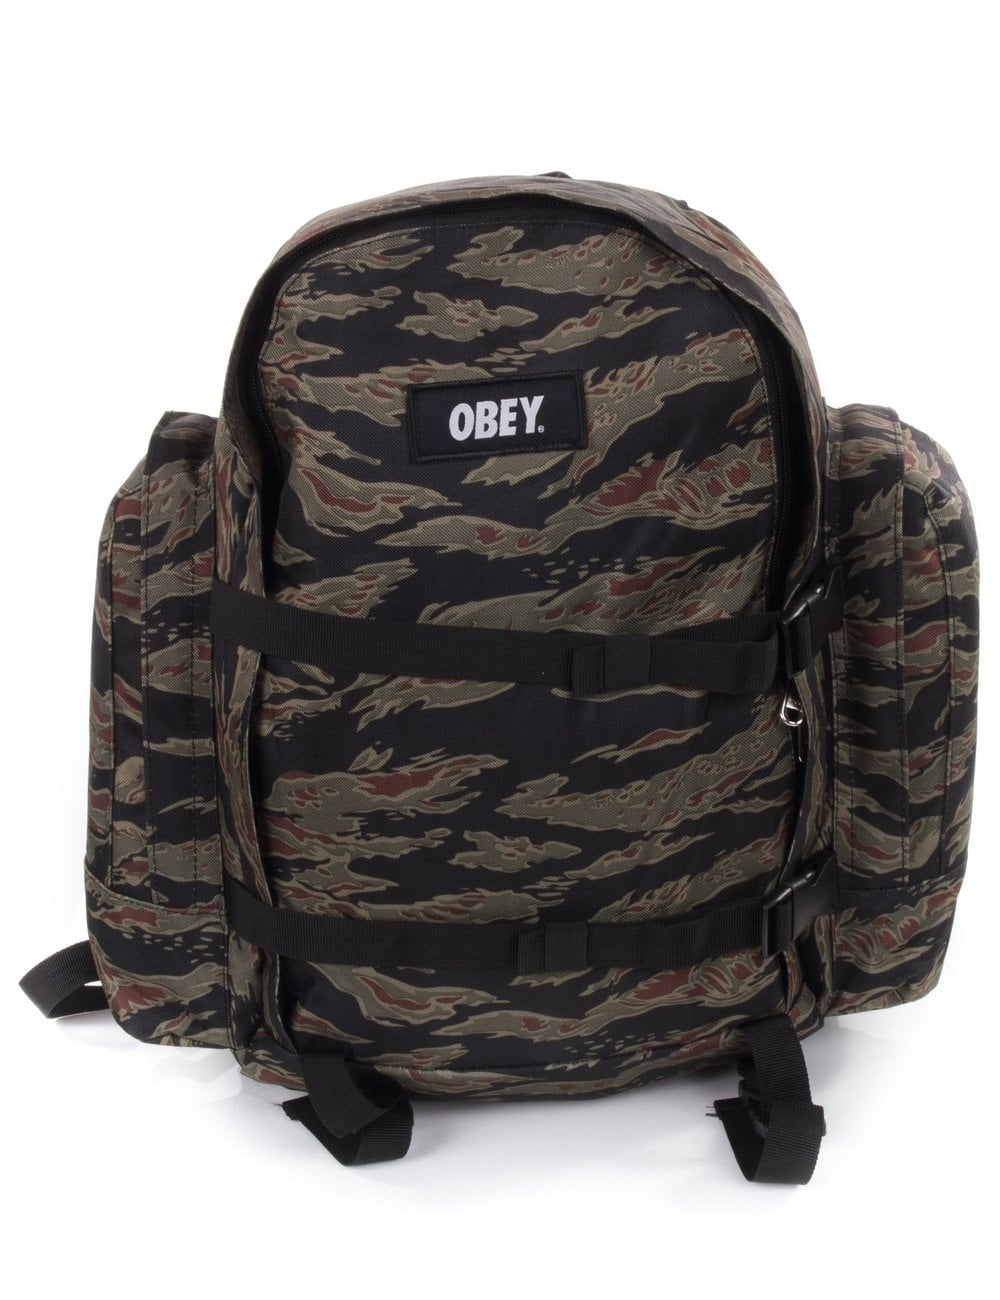 c5dec521fd03 Obey Clothing Field Pack - Tiger Camo - Accessories from Fat Buddha ...